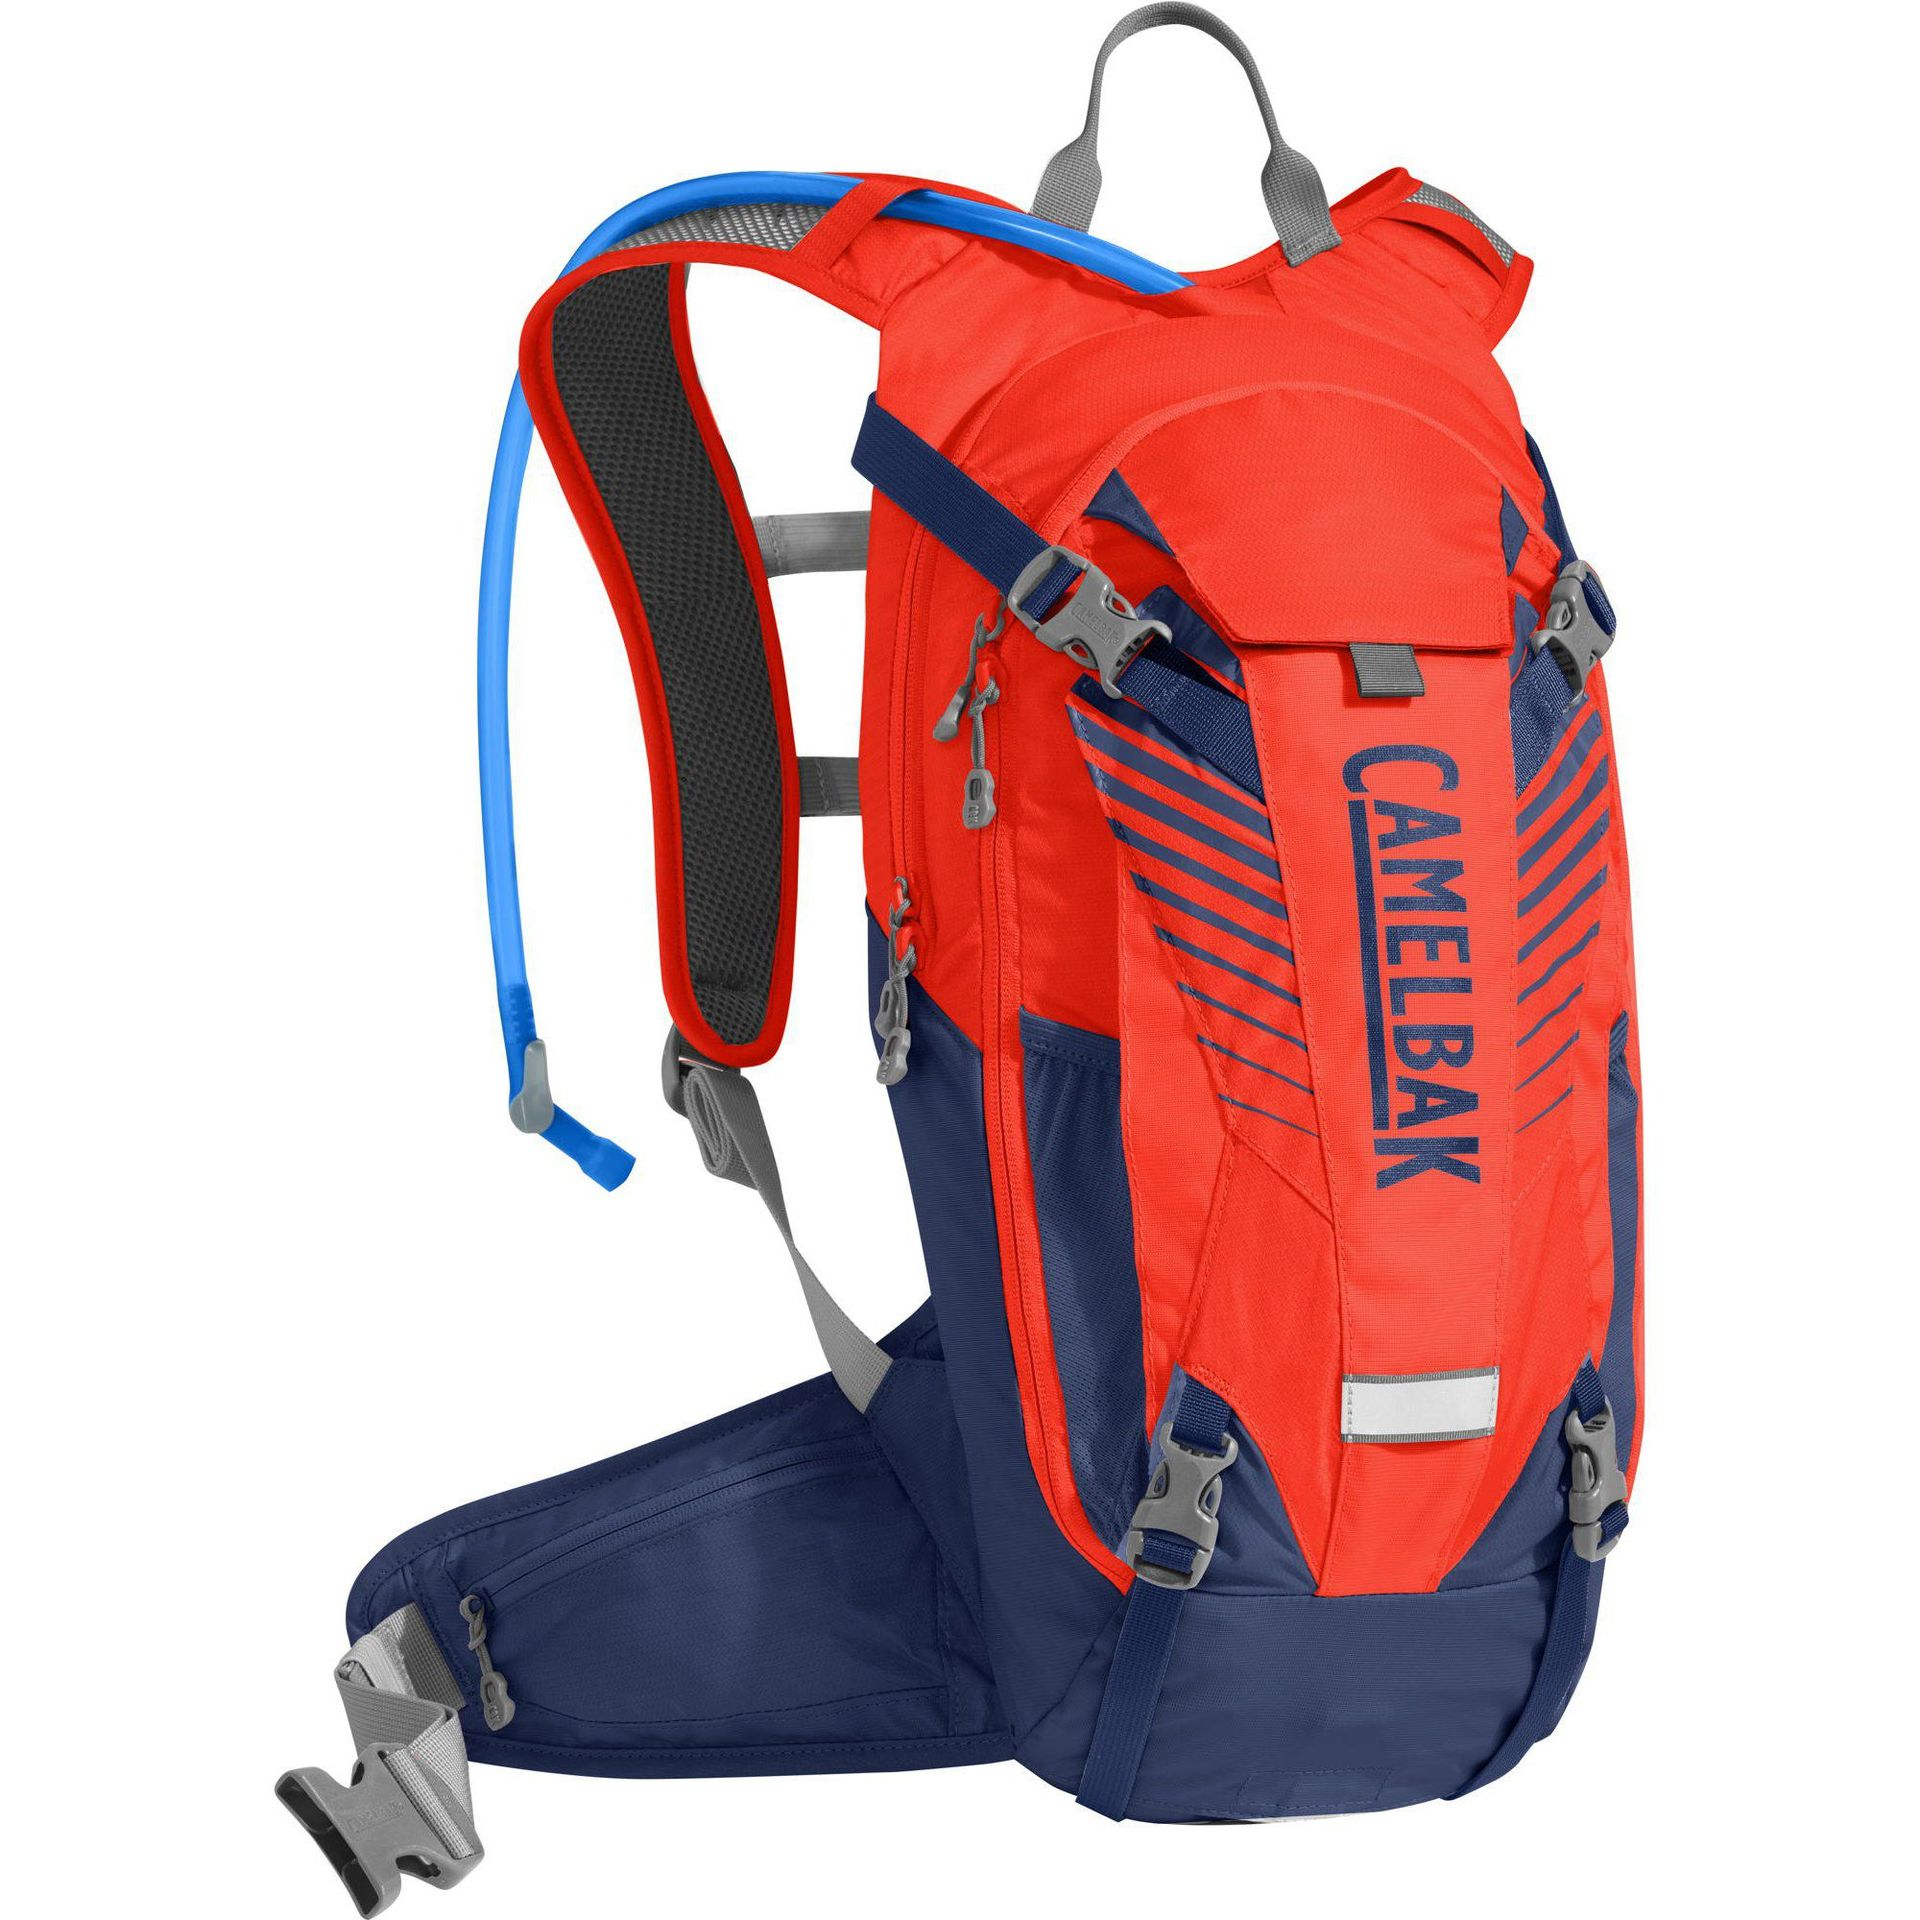 PLECAK CAMELBAK KUDU 8L CHERRY TOMATO|PITCH BLUE 1